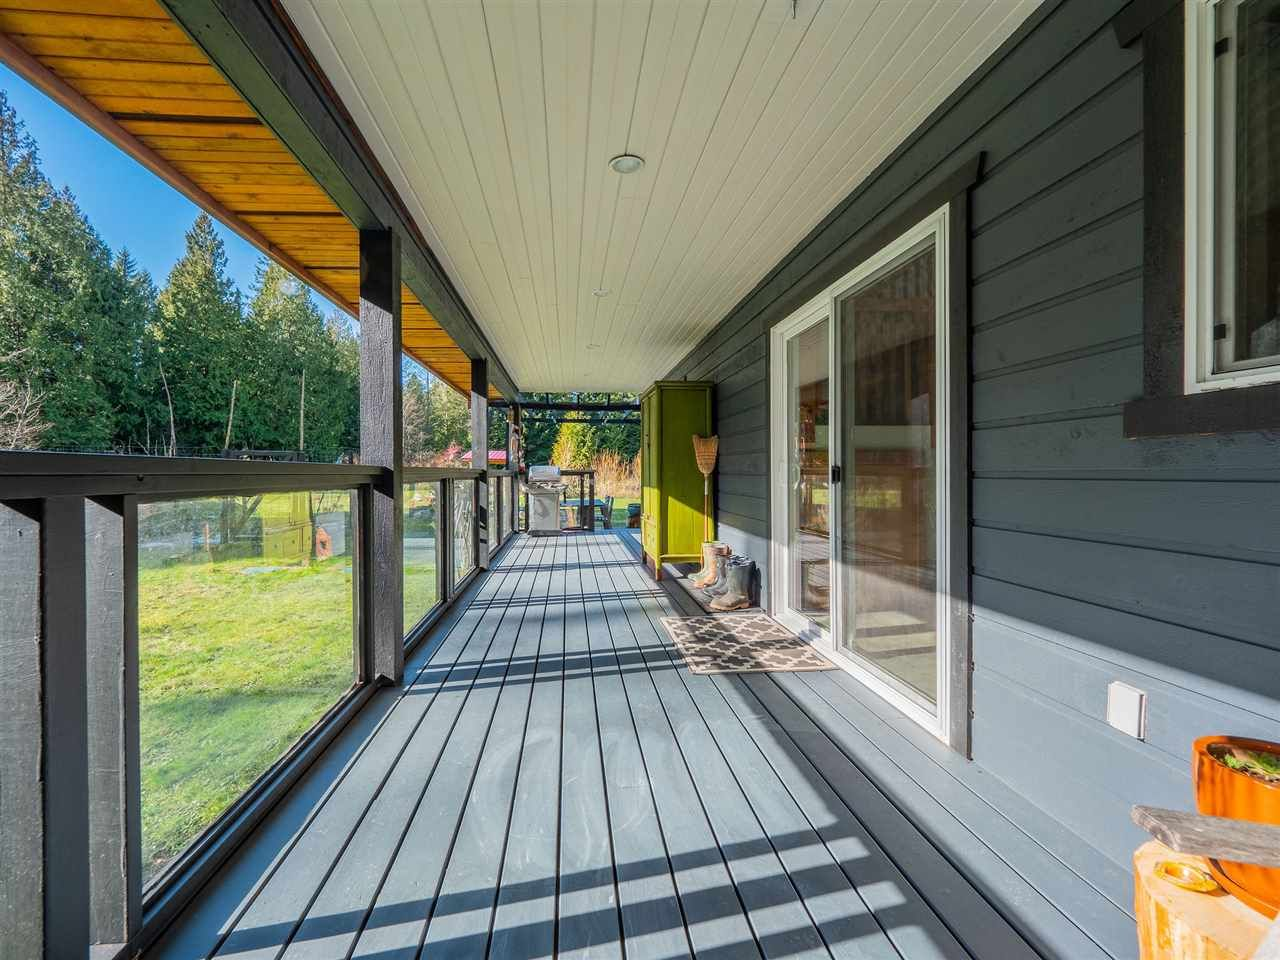 Main Photo: 1215 CHASTER Road in Gibsons: Gibsons & Area House for sale (Sunshine Coast)  : MLS®# R2541518